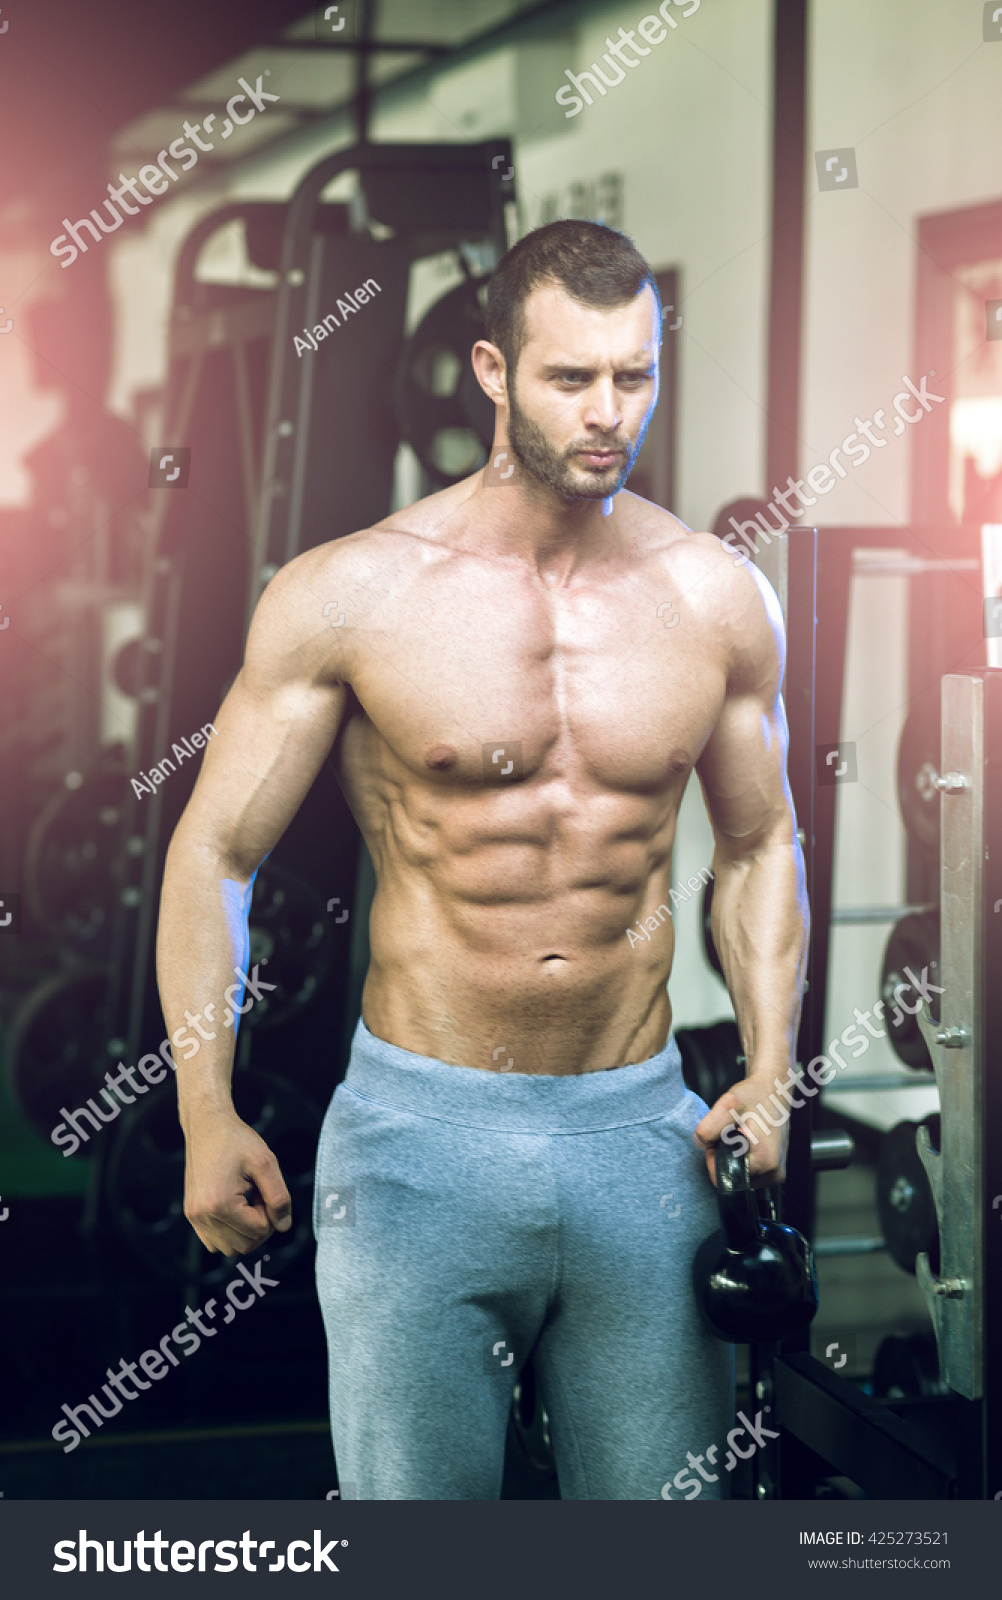 Kettlebell Bodybuilding Man Posing In Gym And Showing Abs Holding Kettlebell In Hand Ez